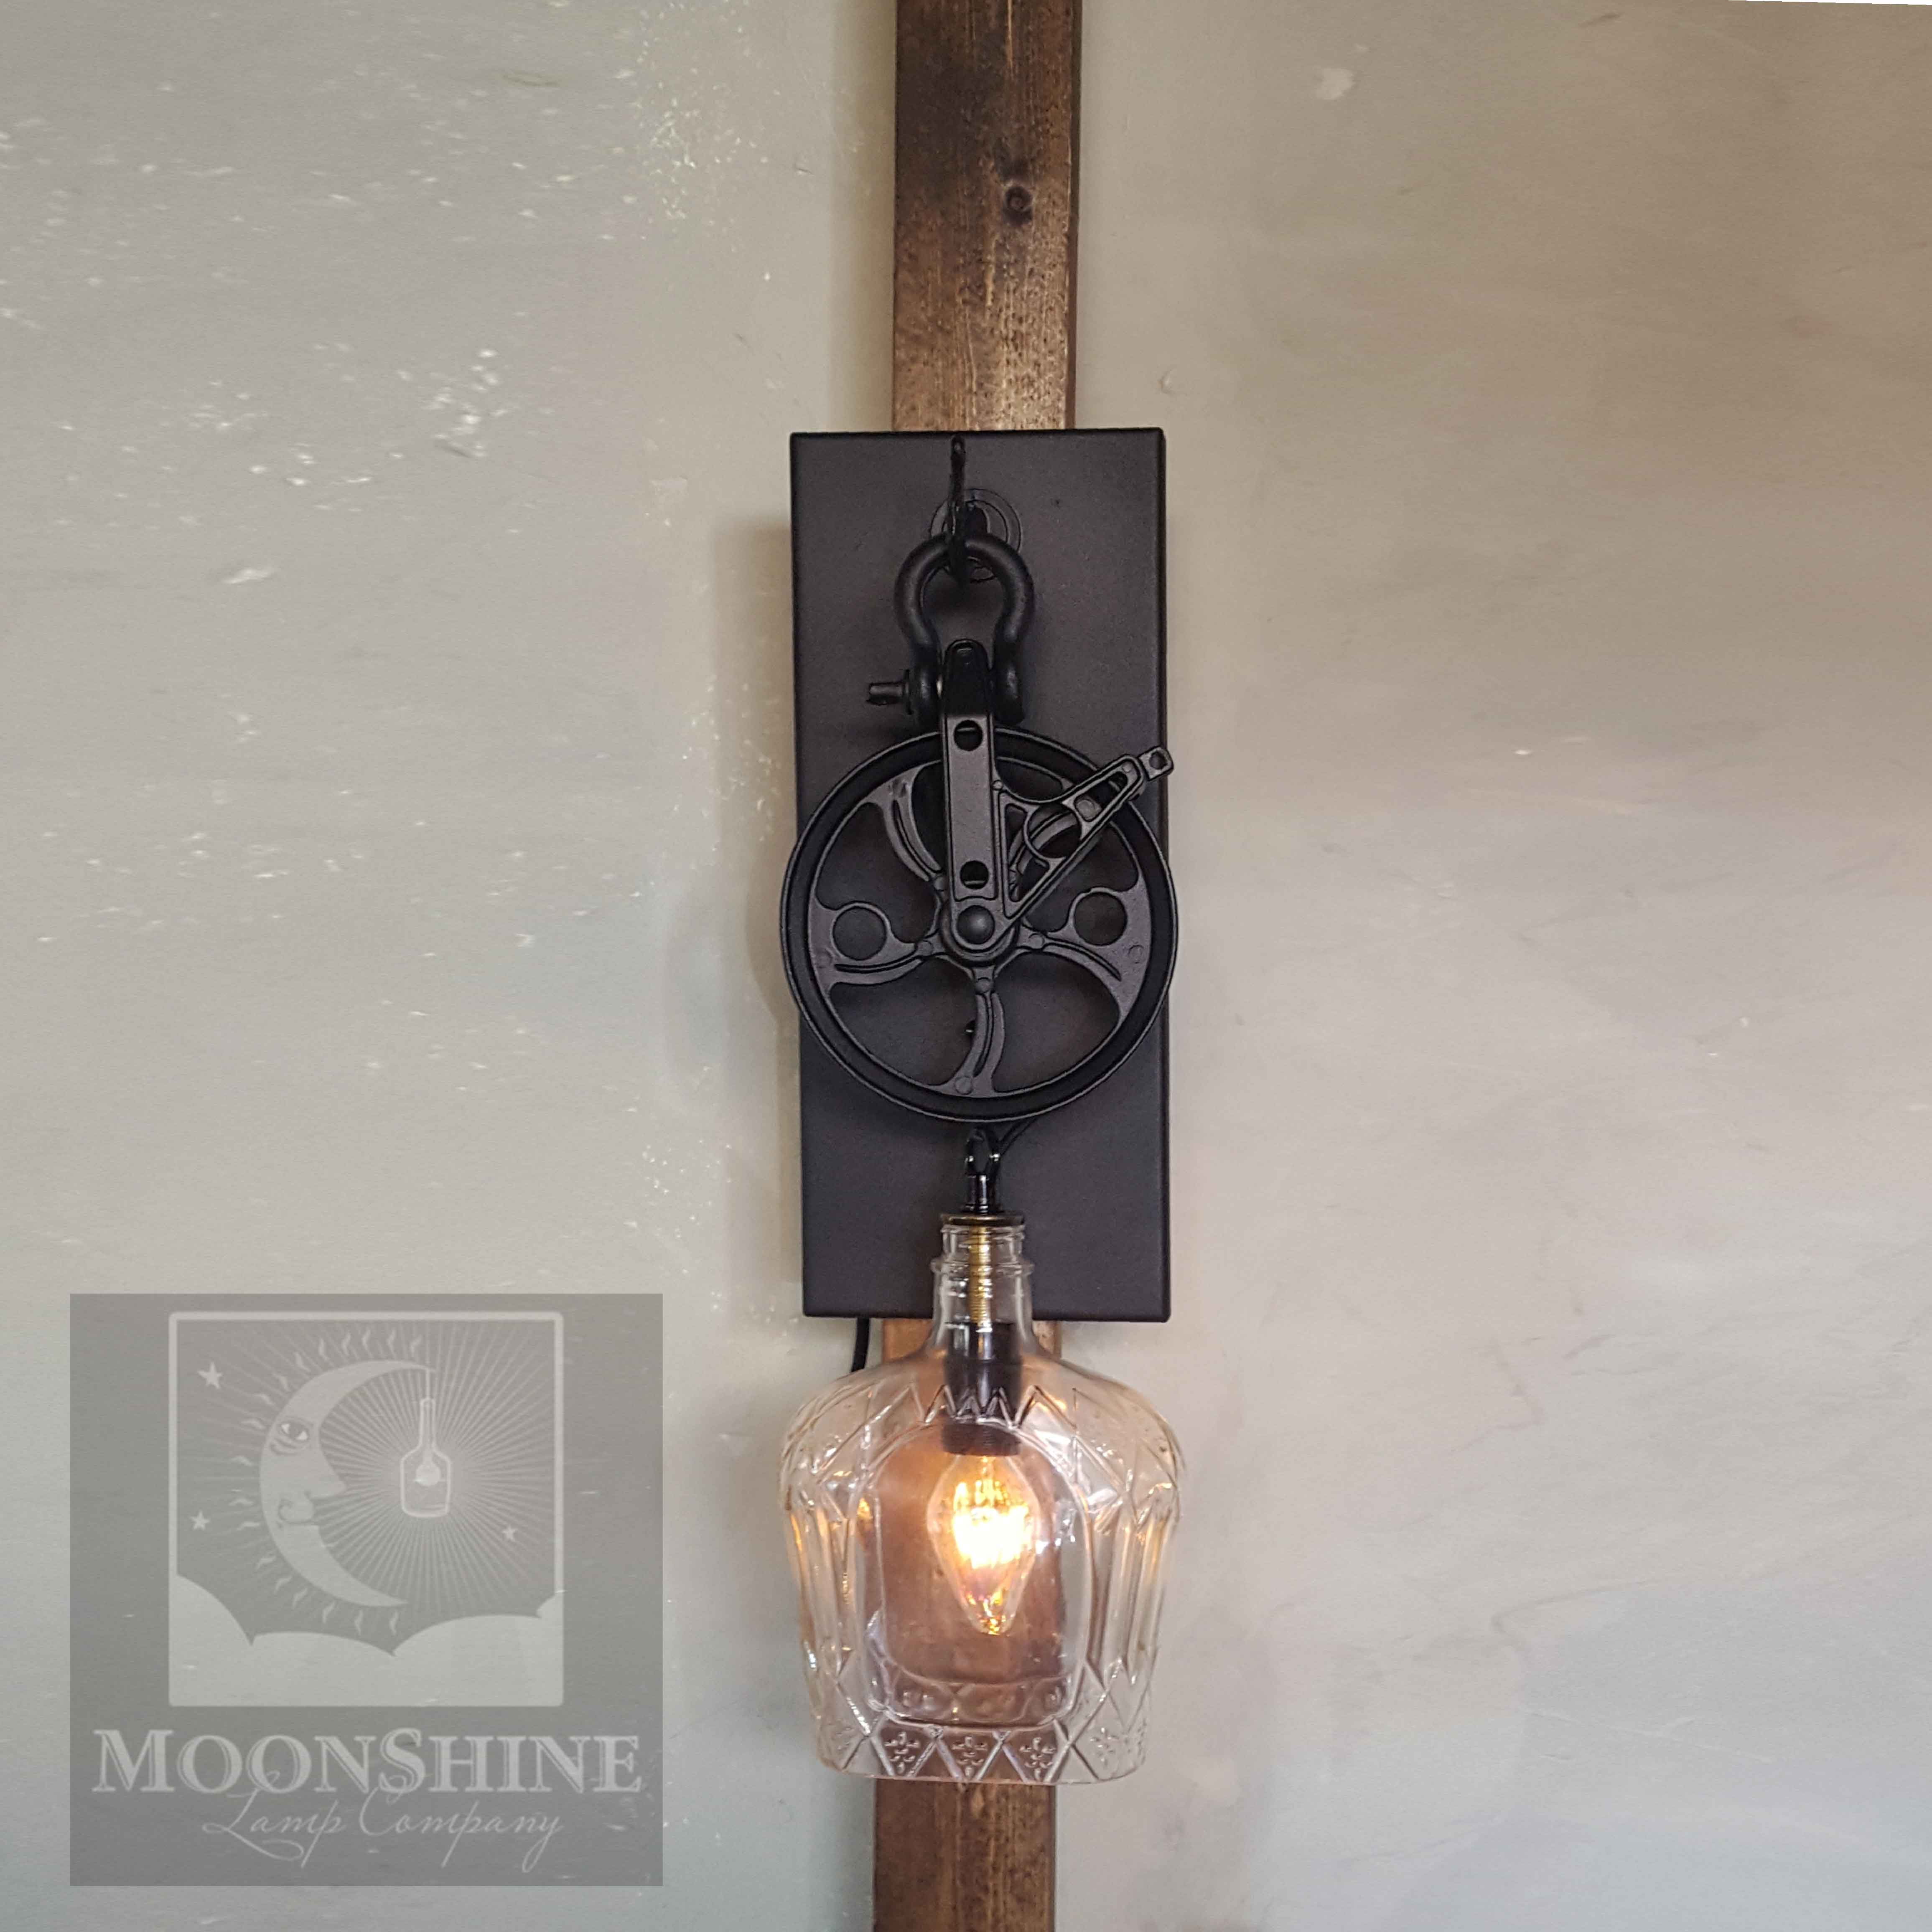 Crown Royal Whiskey Bottle Handmade Pulley Wall Sconce Light With